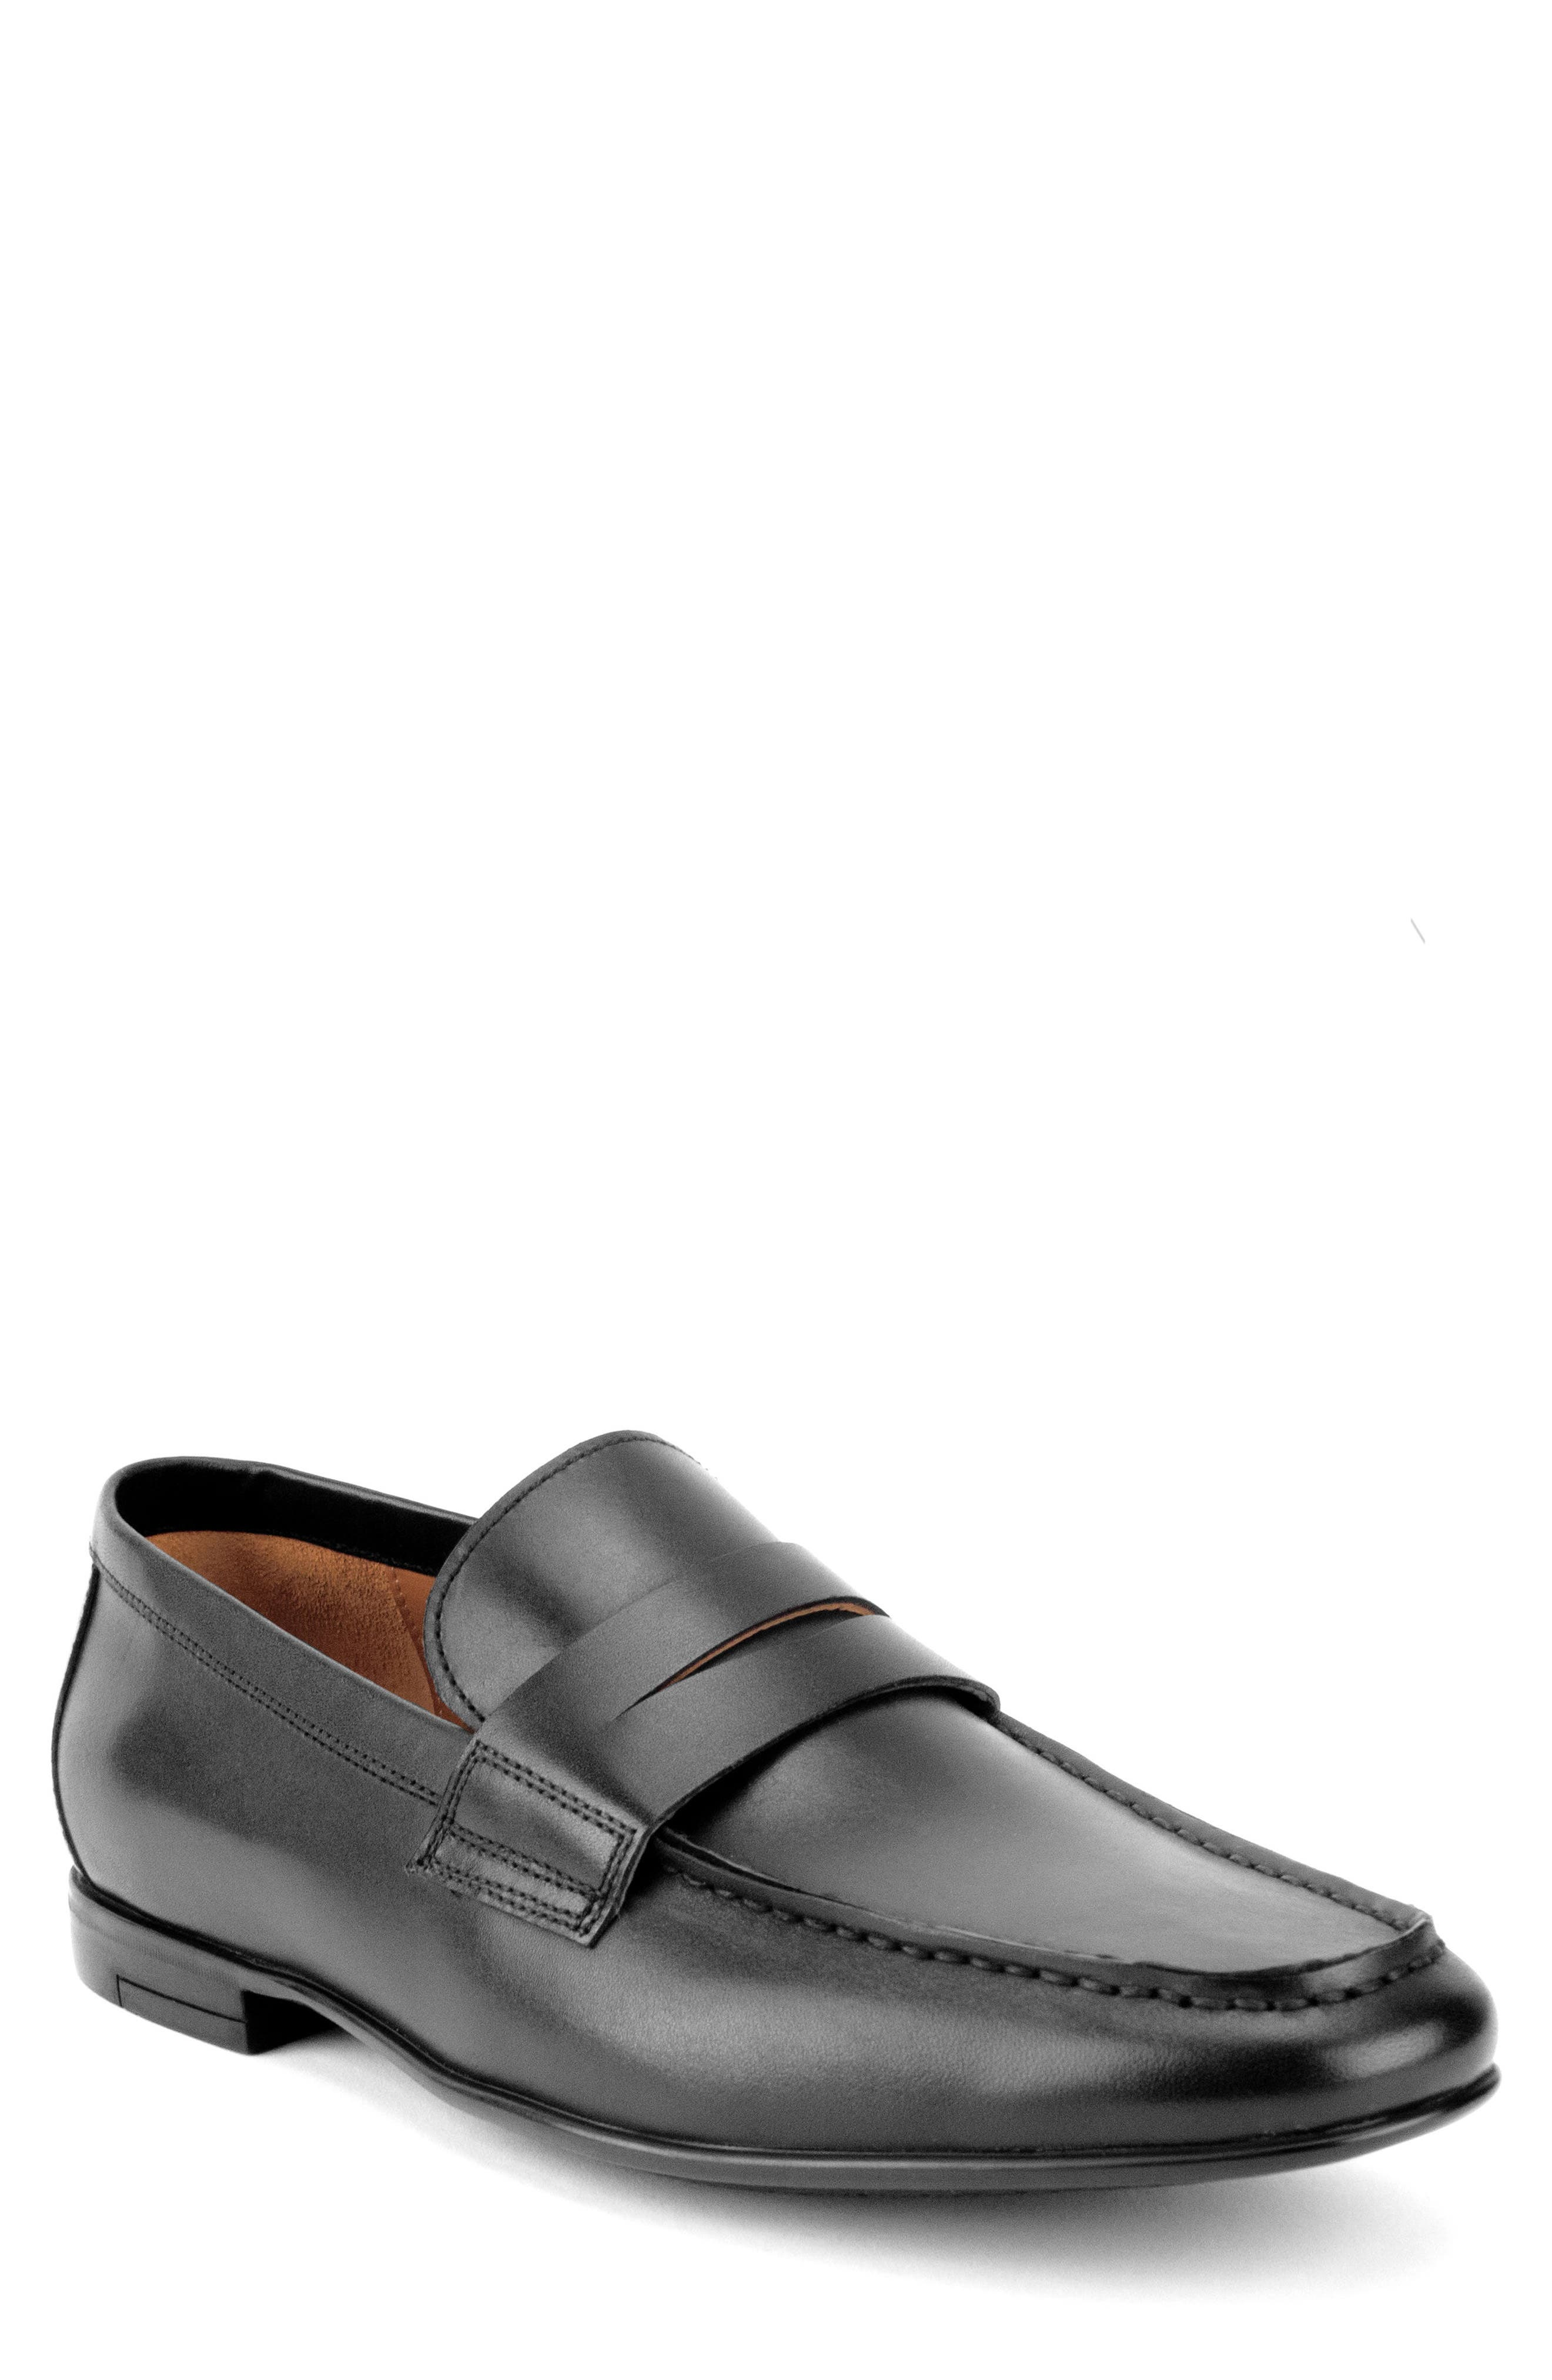 Connery Penny Loafer,                             Main thumbnail 1, color,                             BLACK LEATHER